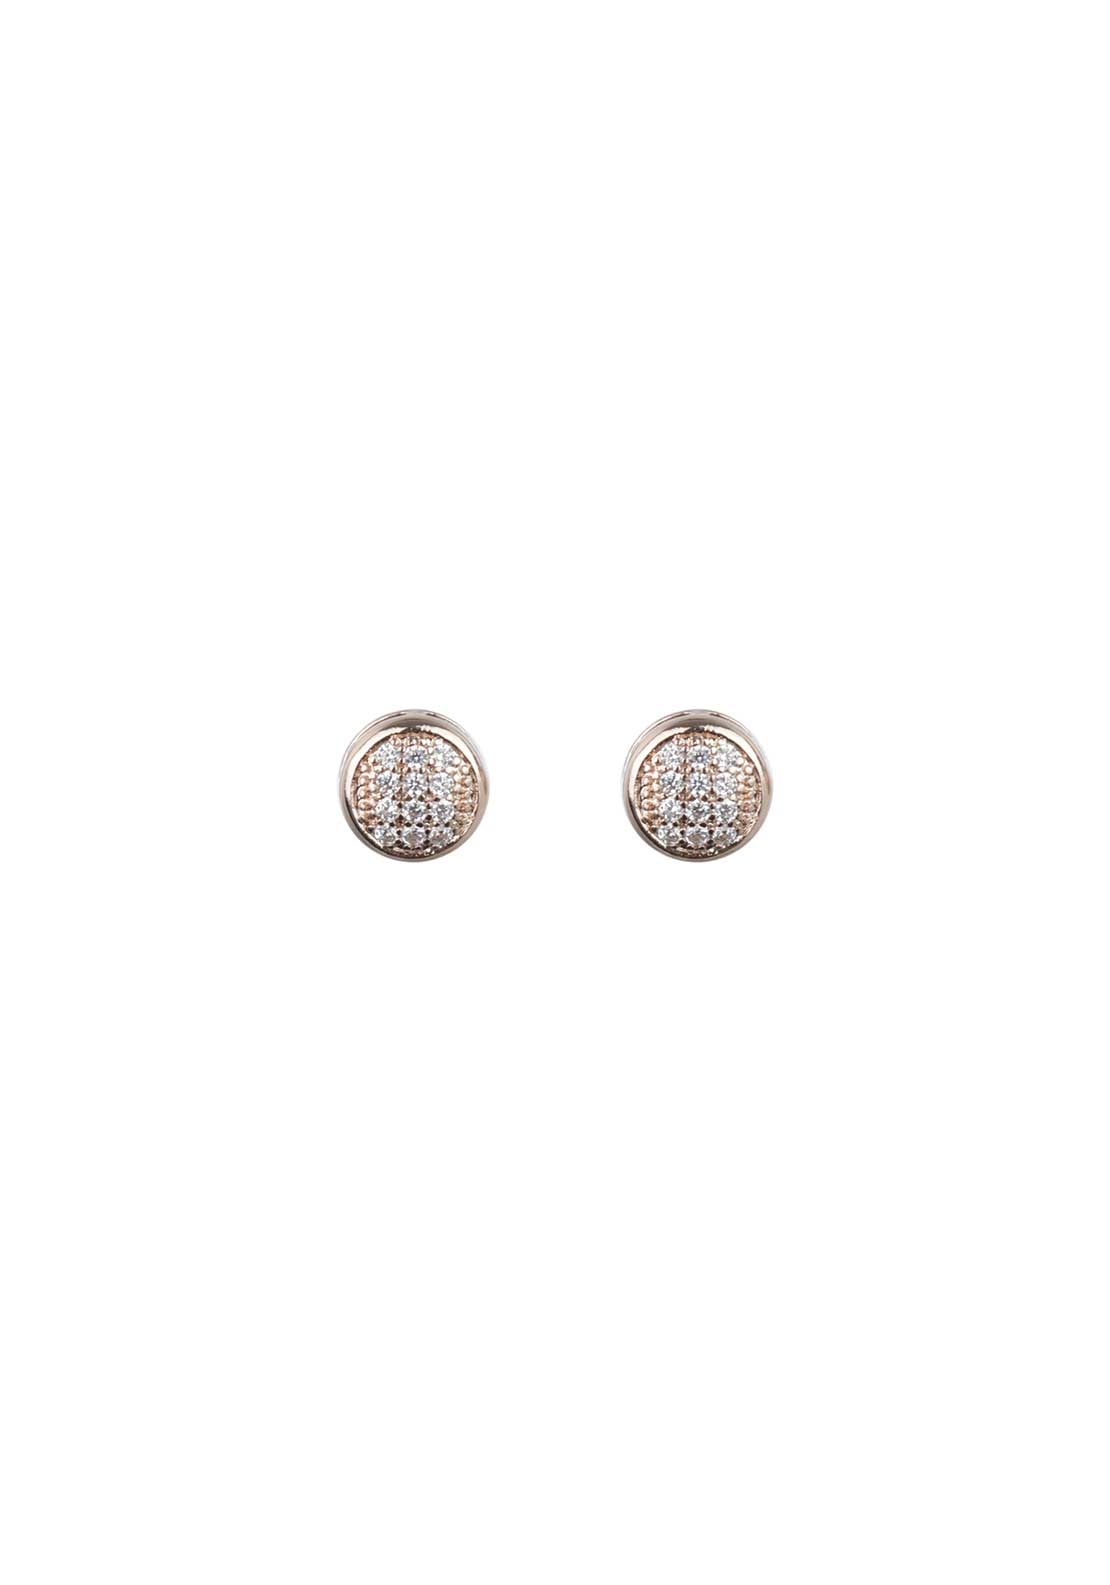 Absolute Jewellery Girls Small Pave Stud Earrings, Rose Gold